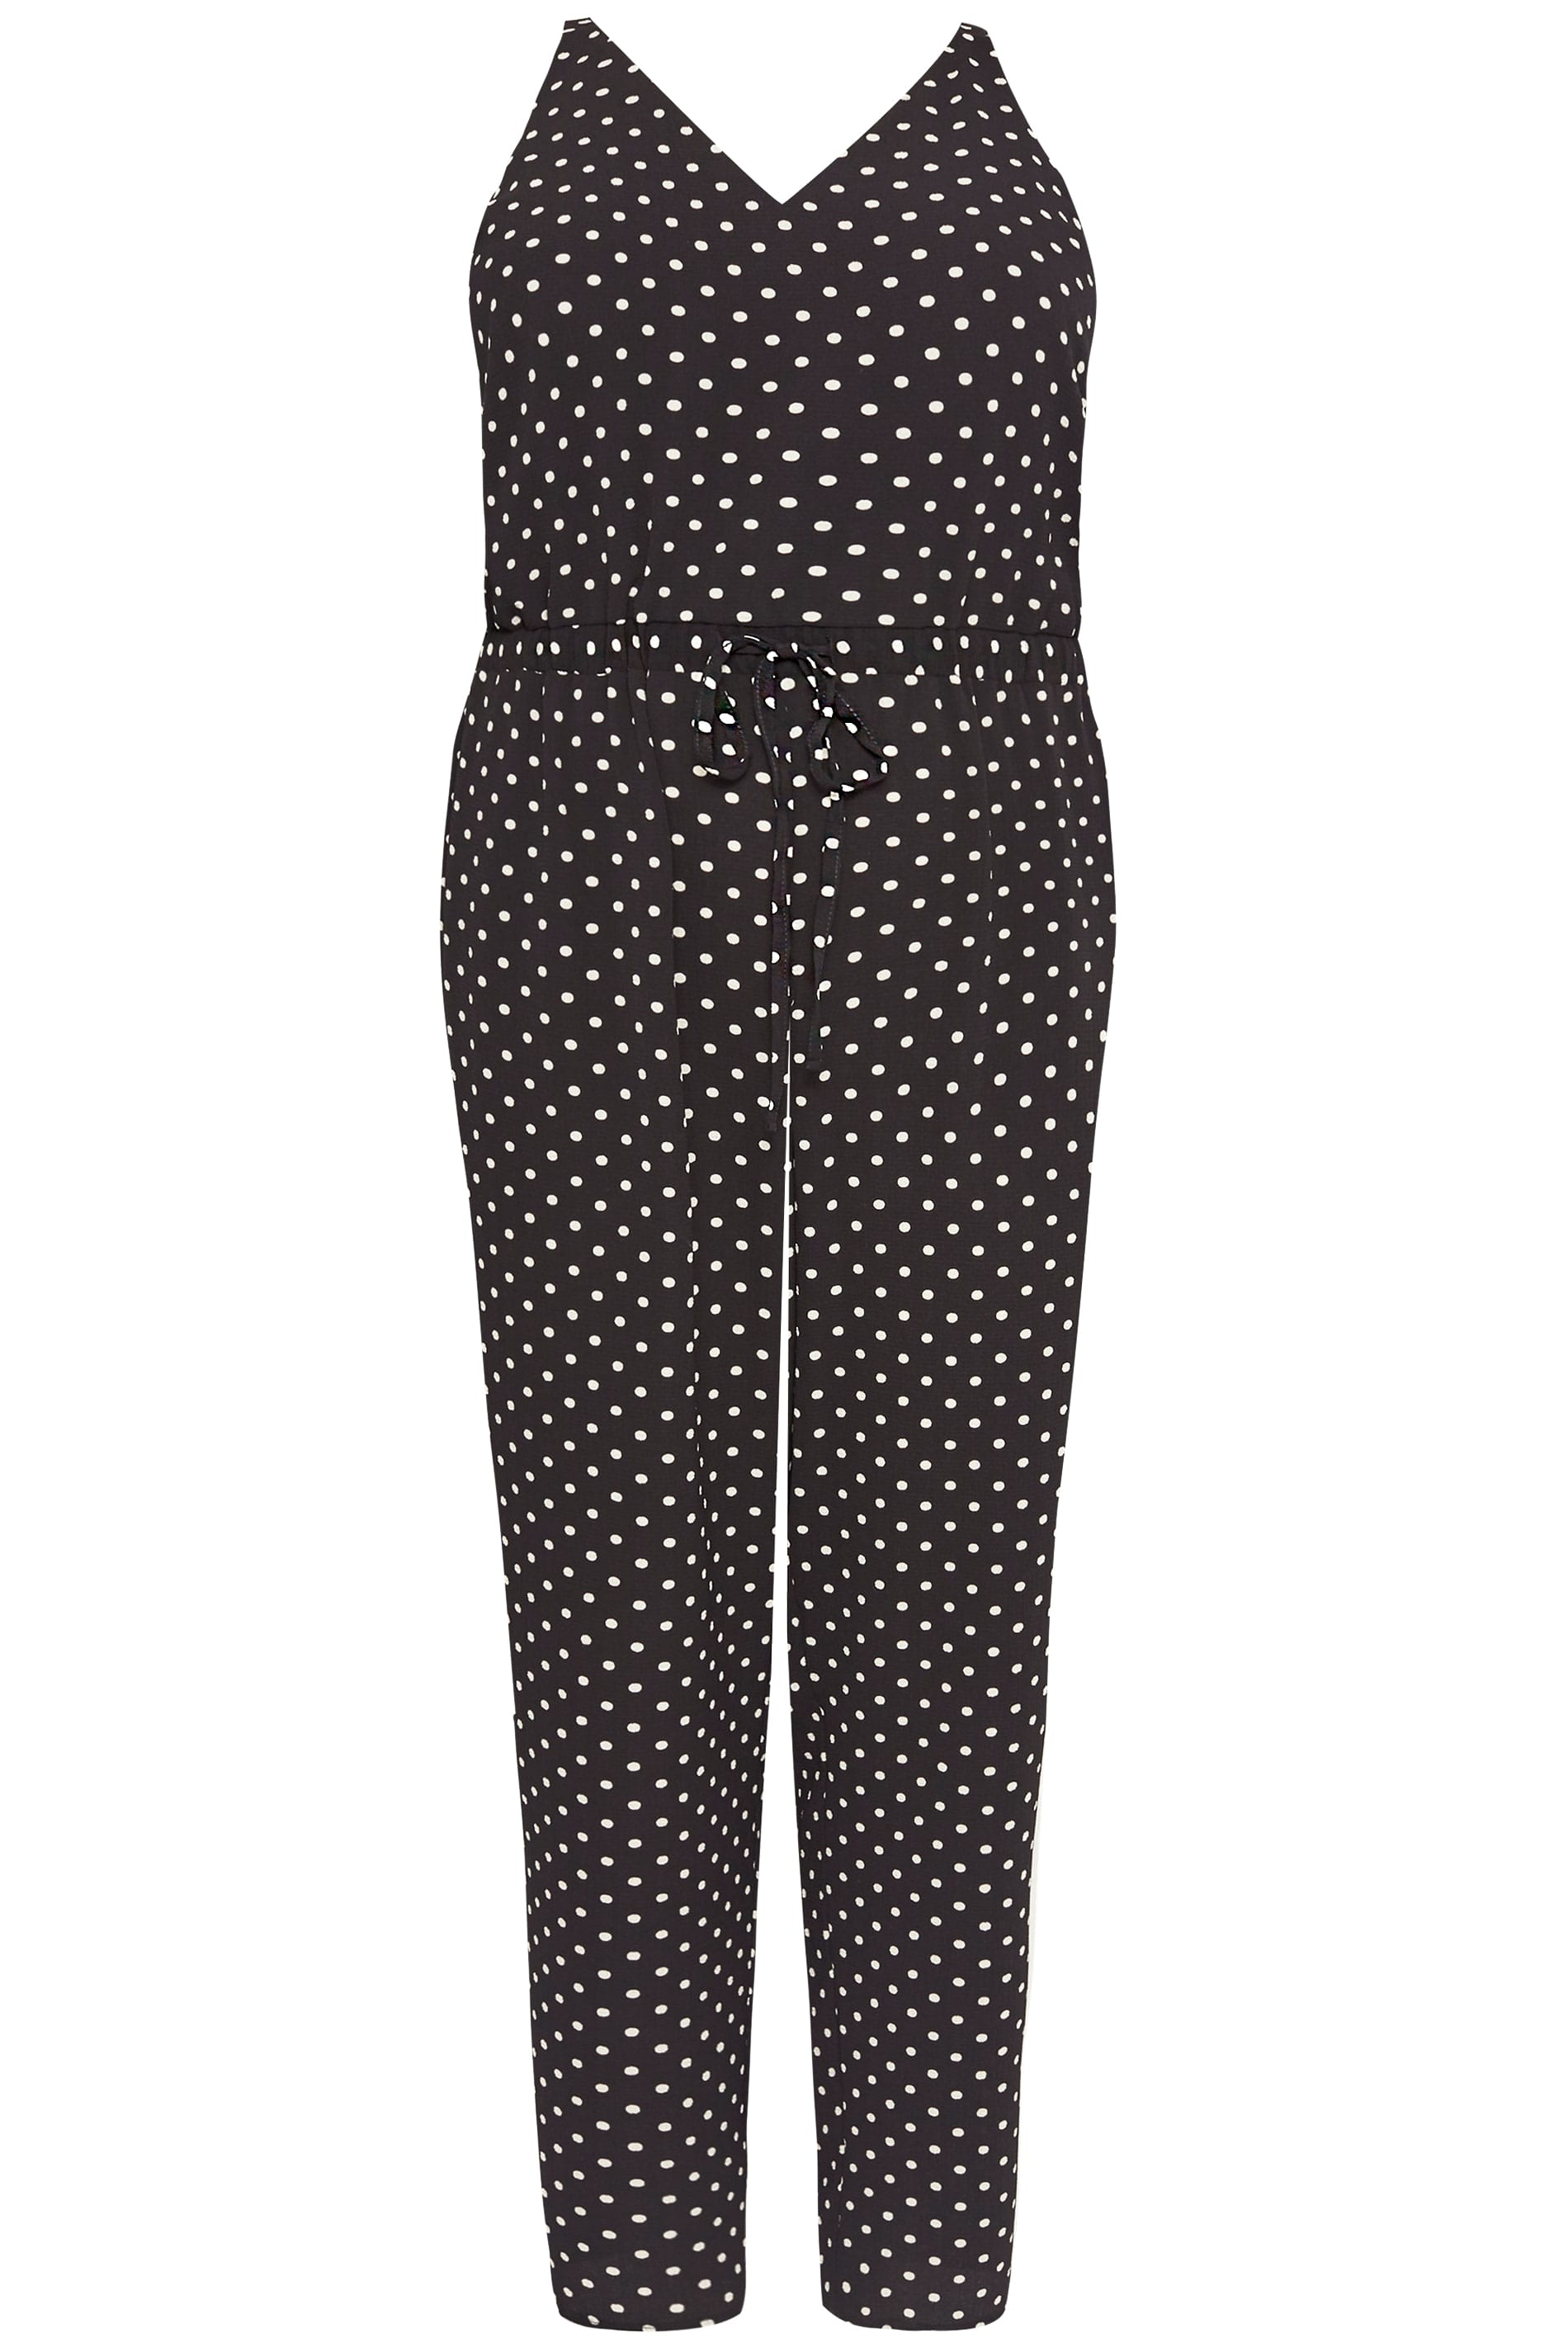 23c225e1a676d Plus Size Black Polka Dot Jumpsuit | Sizes 16 to 36 | Yours Clothing